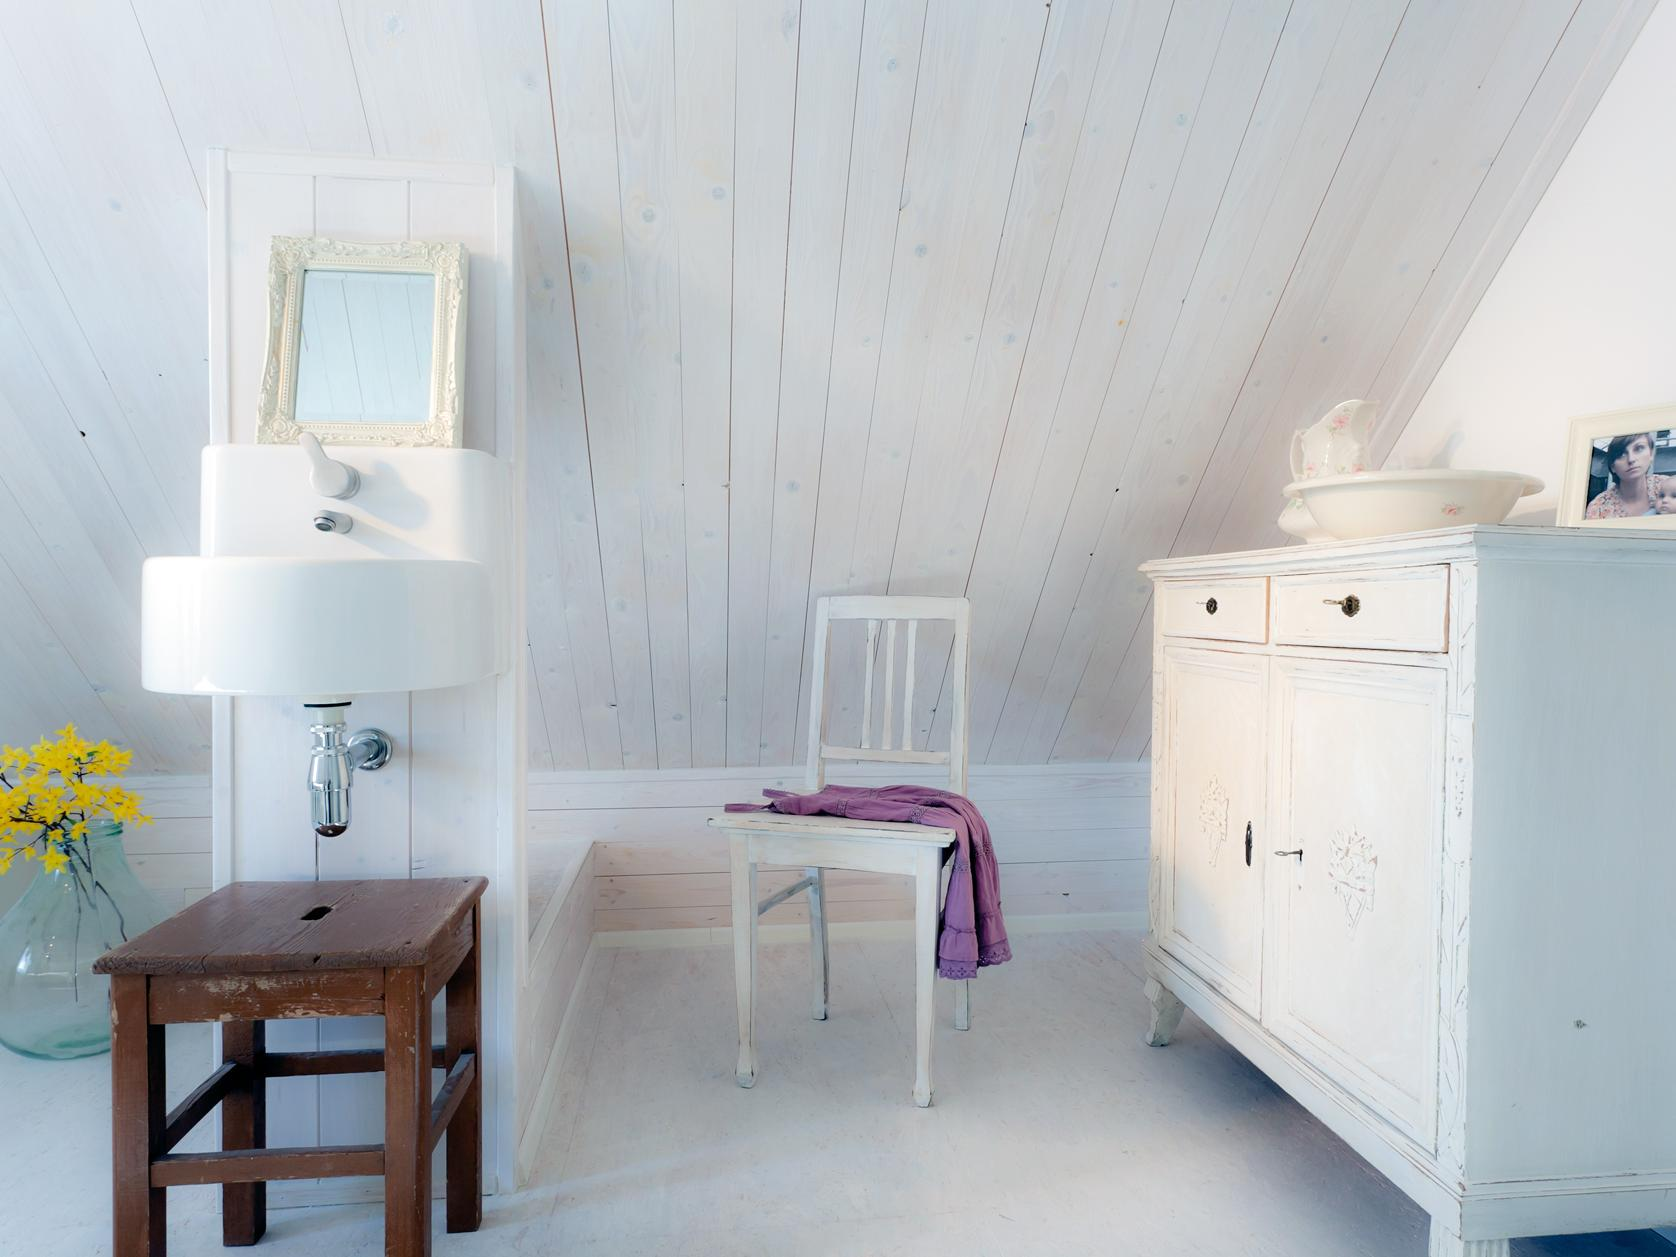 cozy bathroom in country house look